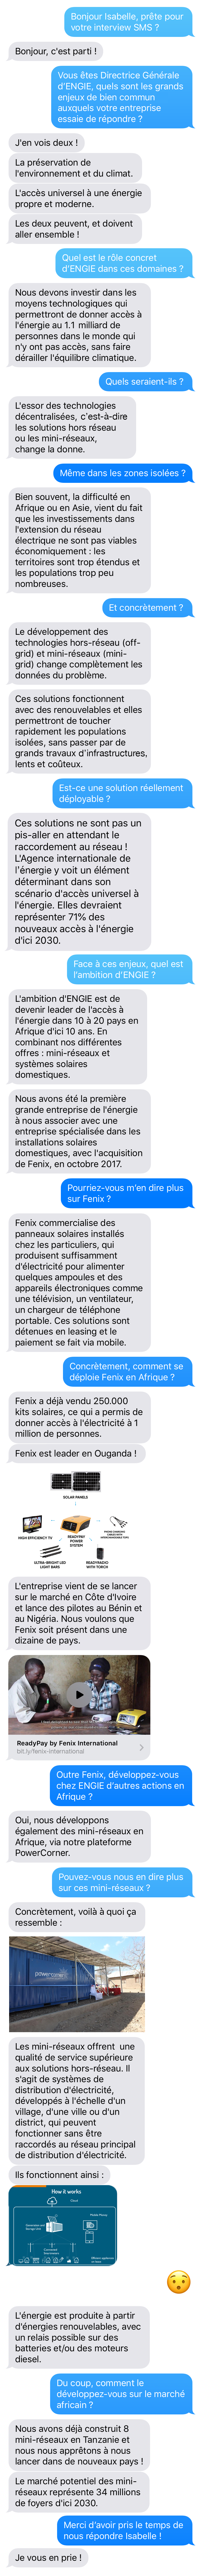 interview-sms-isabelle-kocher.png